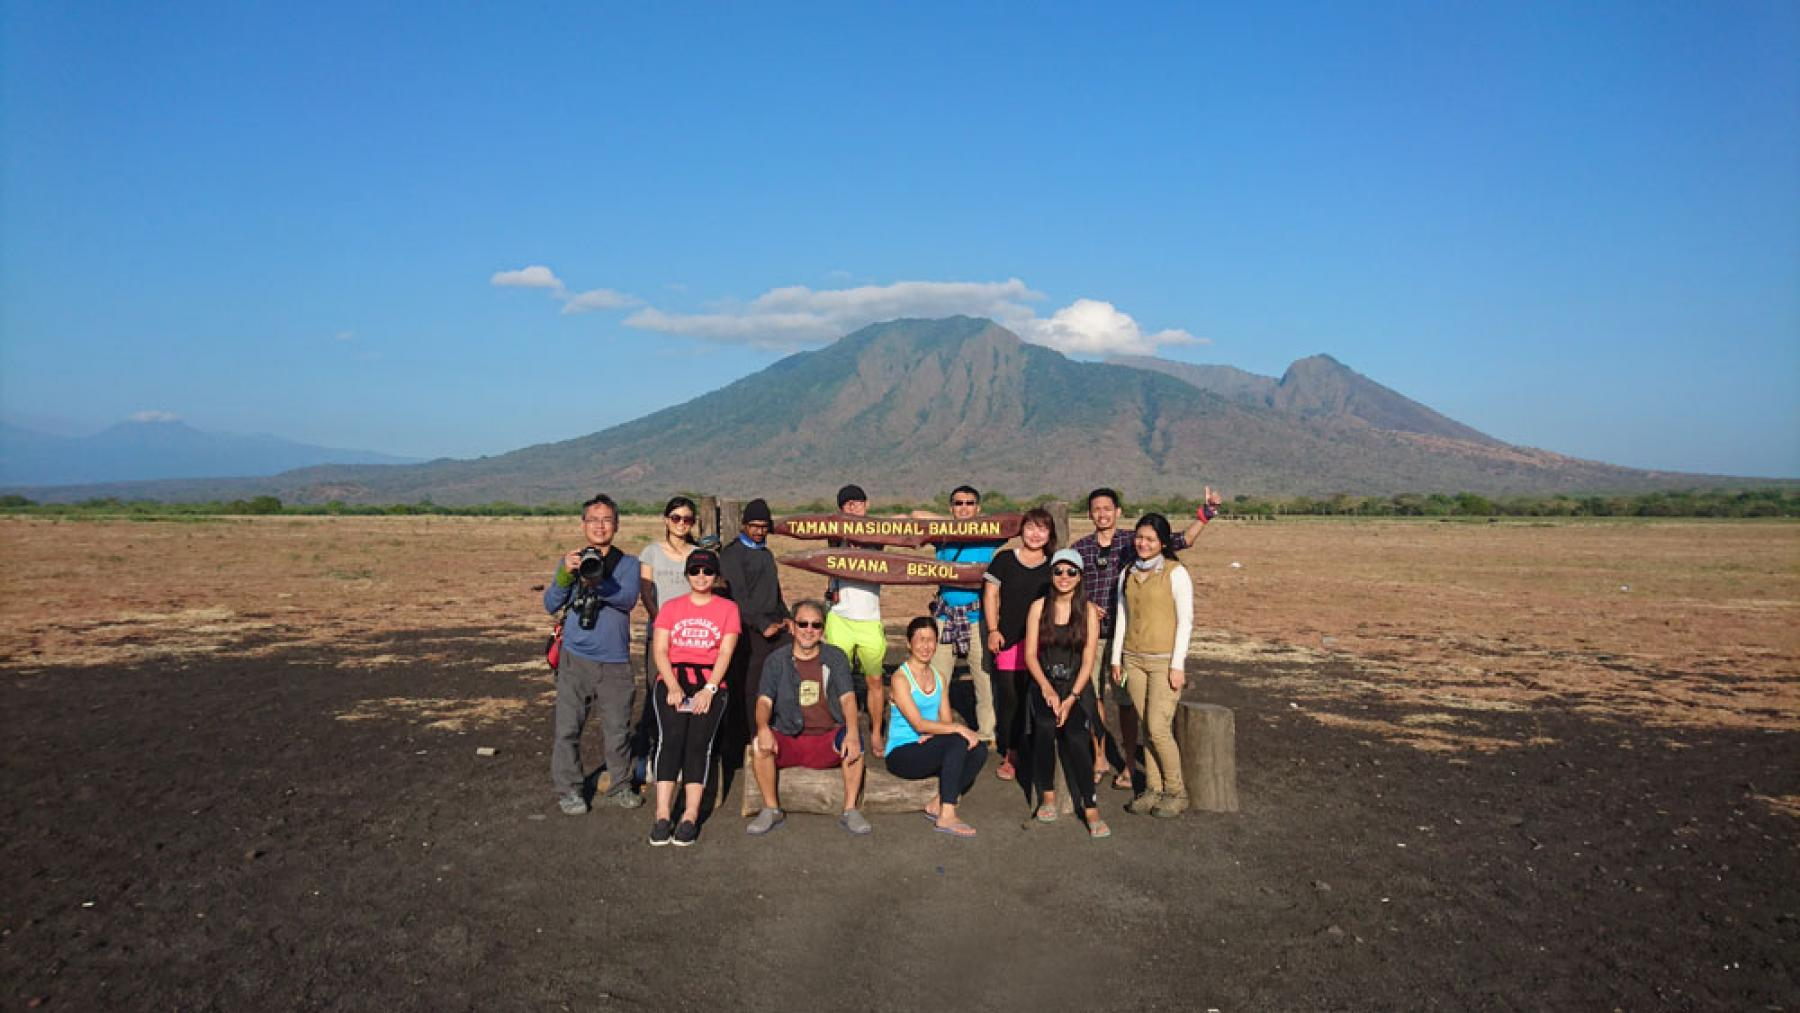 [6D5N] Bromo, Ijen, Baluran & Menjangan Island (Surabaya to Bali) starting at Surabaya City, East Java, Indonesia